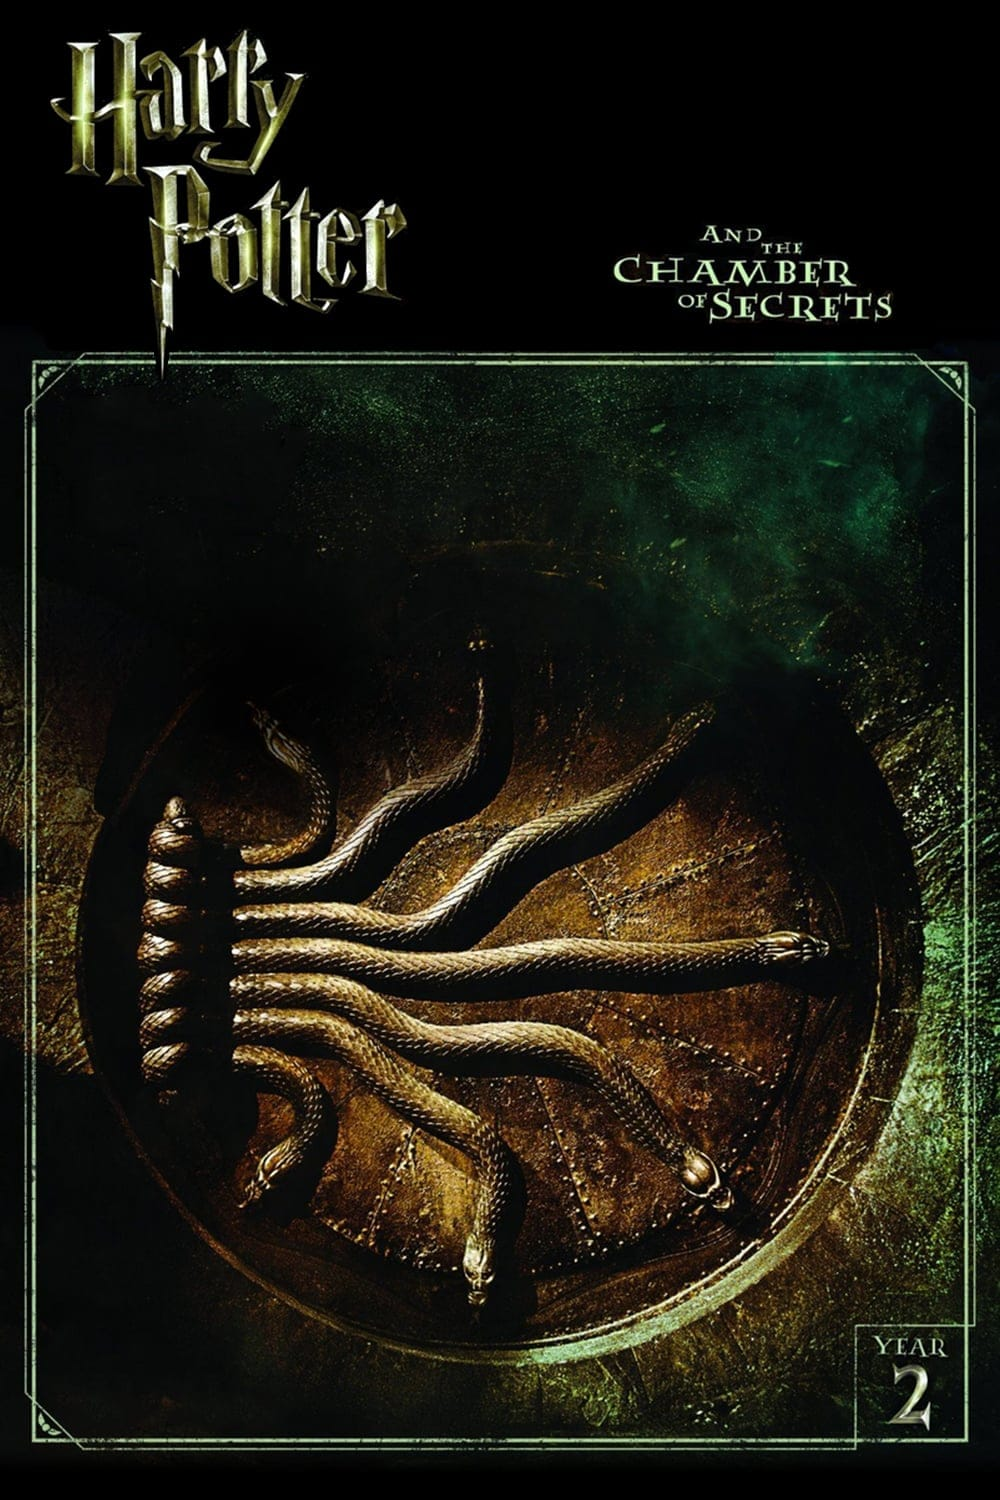 harry potter poster the chamber of secrets 2002 high quality HD printable wallpapers the gate of the chamber